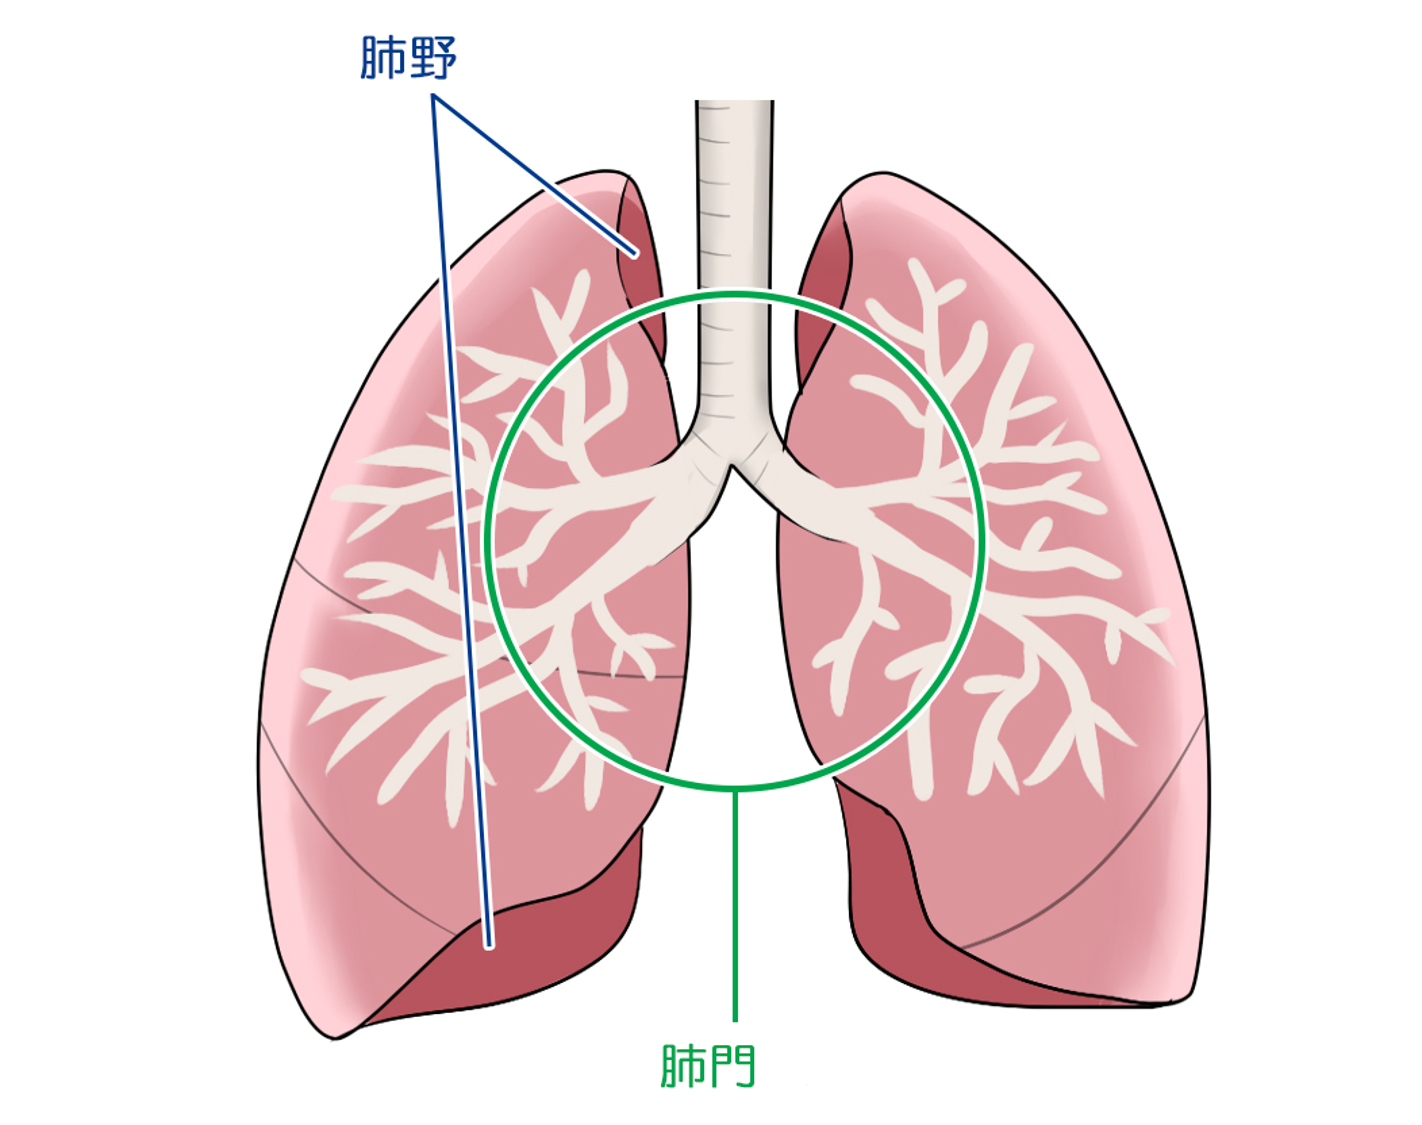 Lung details